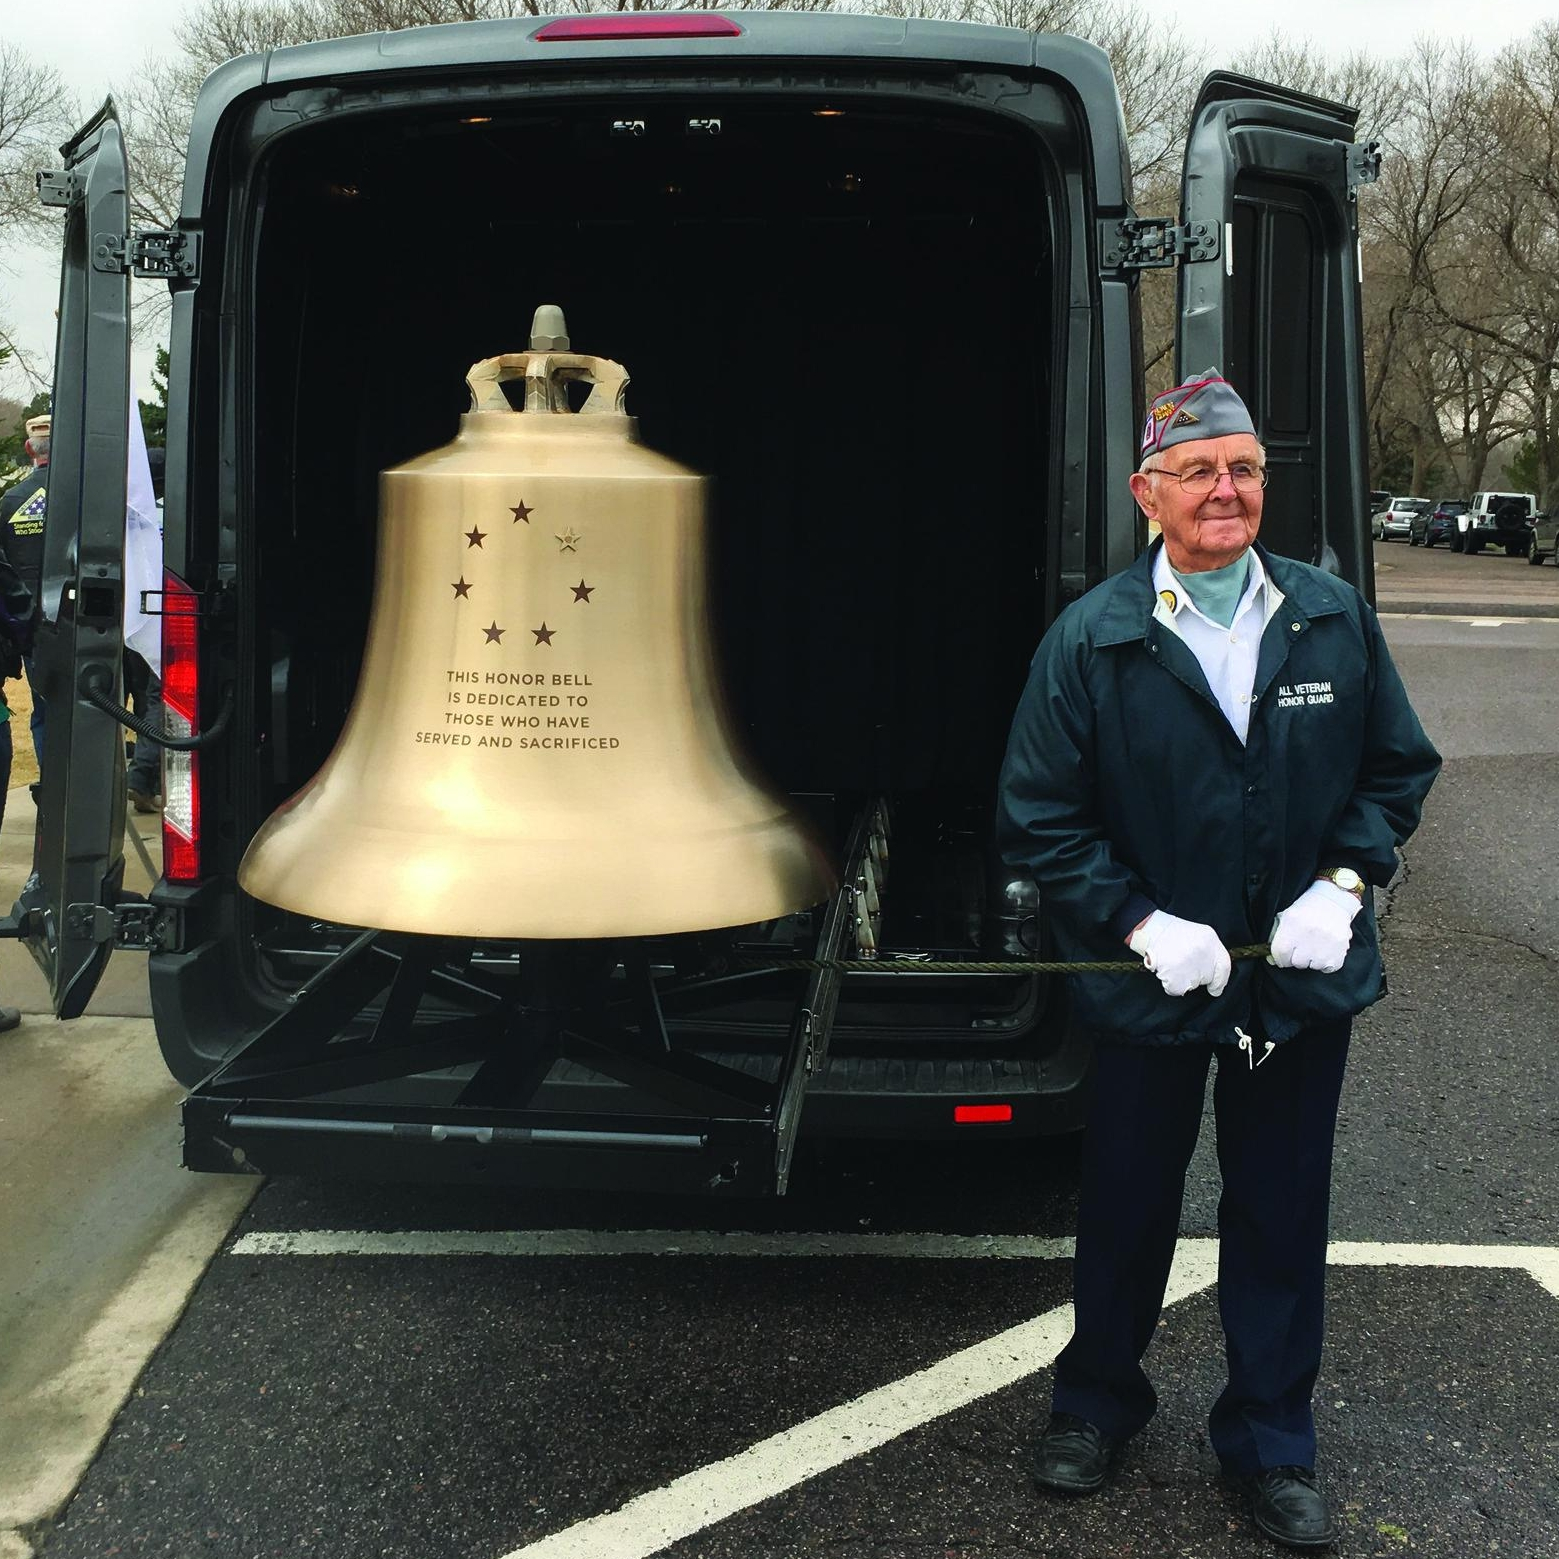 Your donation will keep the Honor Bell tolling for our veterans